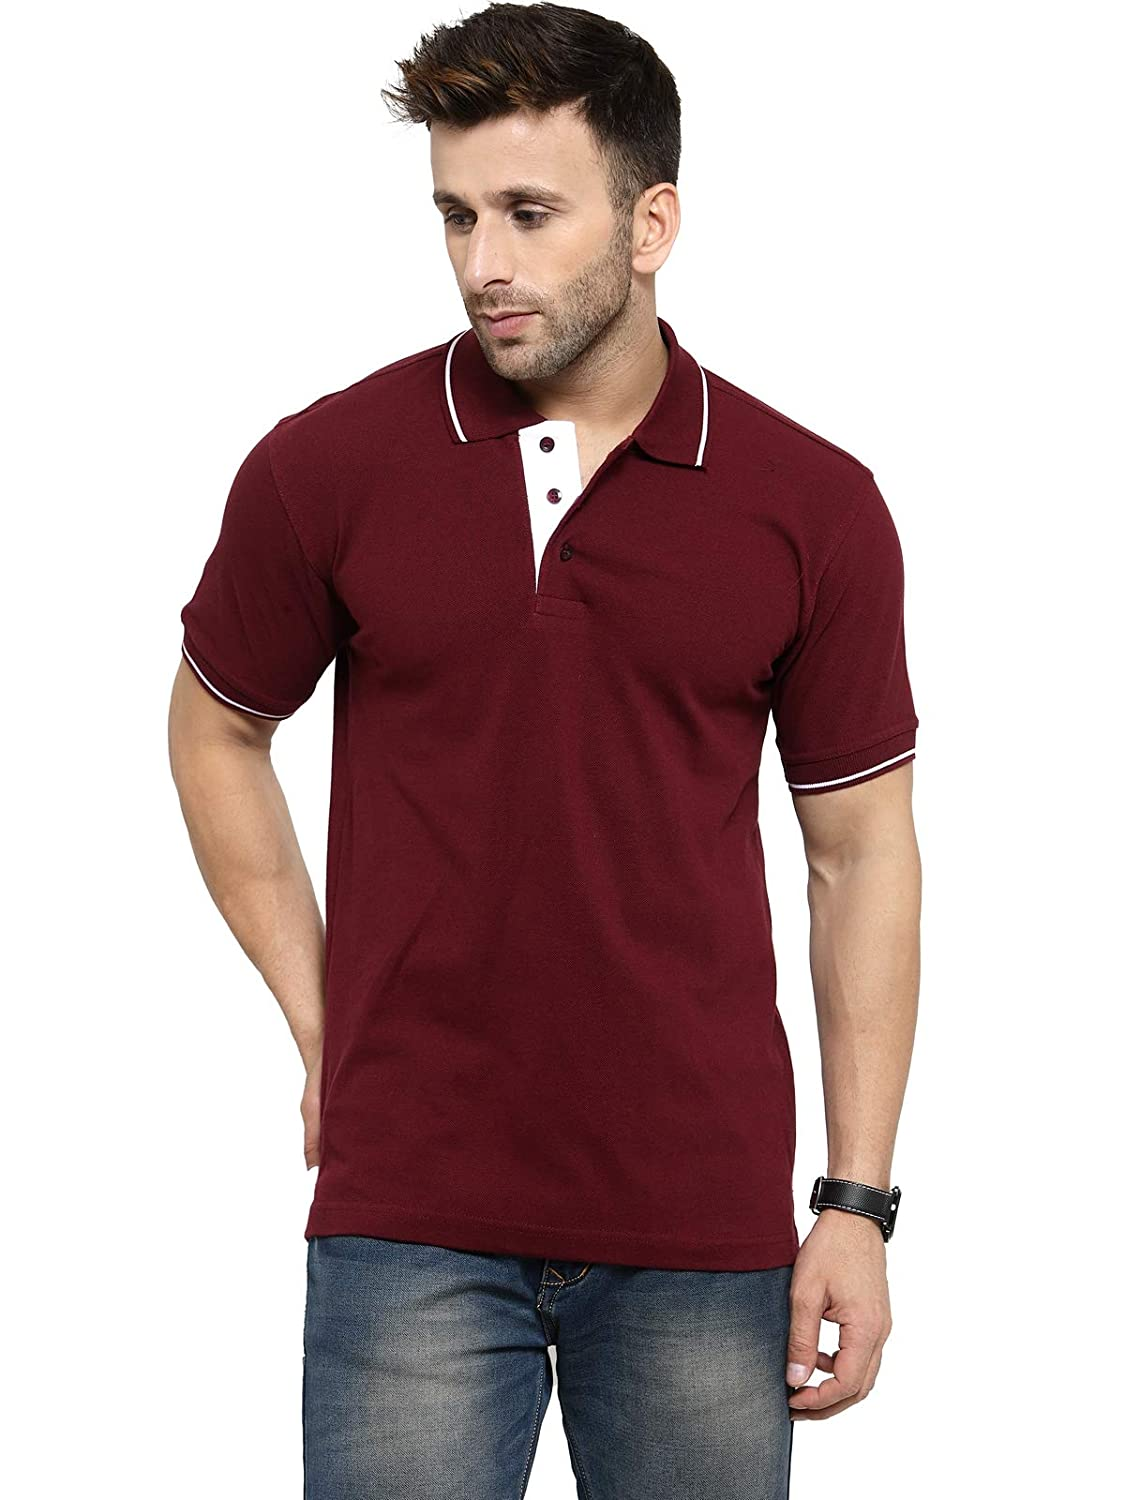 Men's Maroon With White Tipping Cotton Polo T-Shirt (L-42)